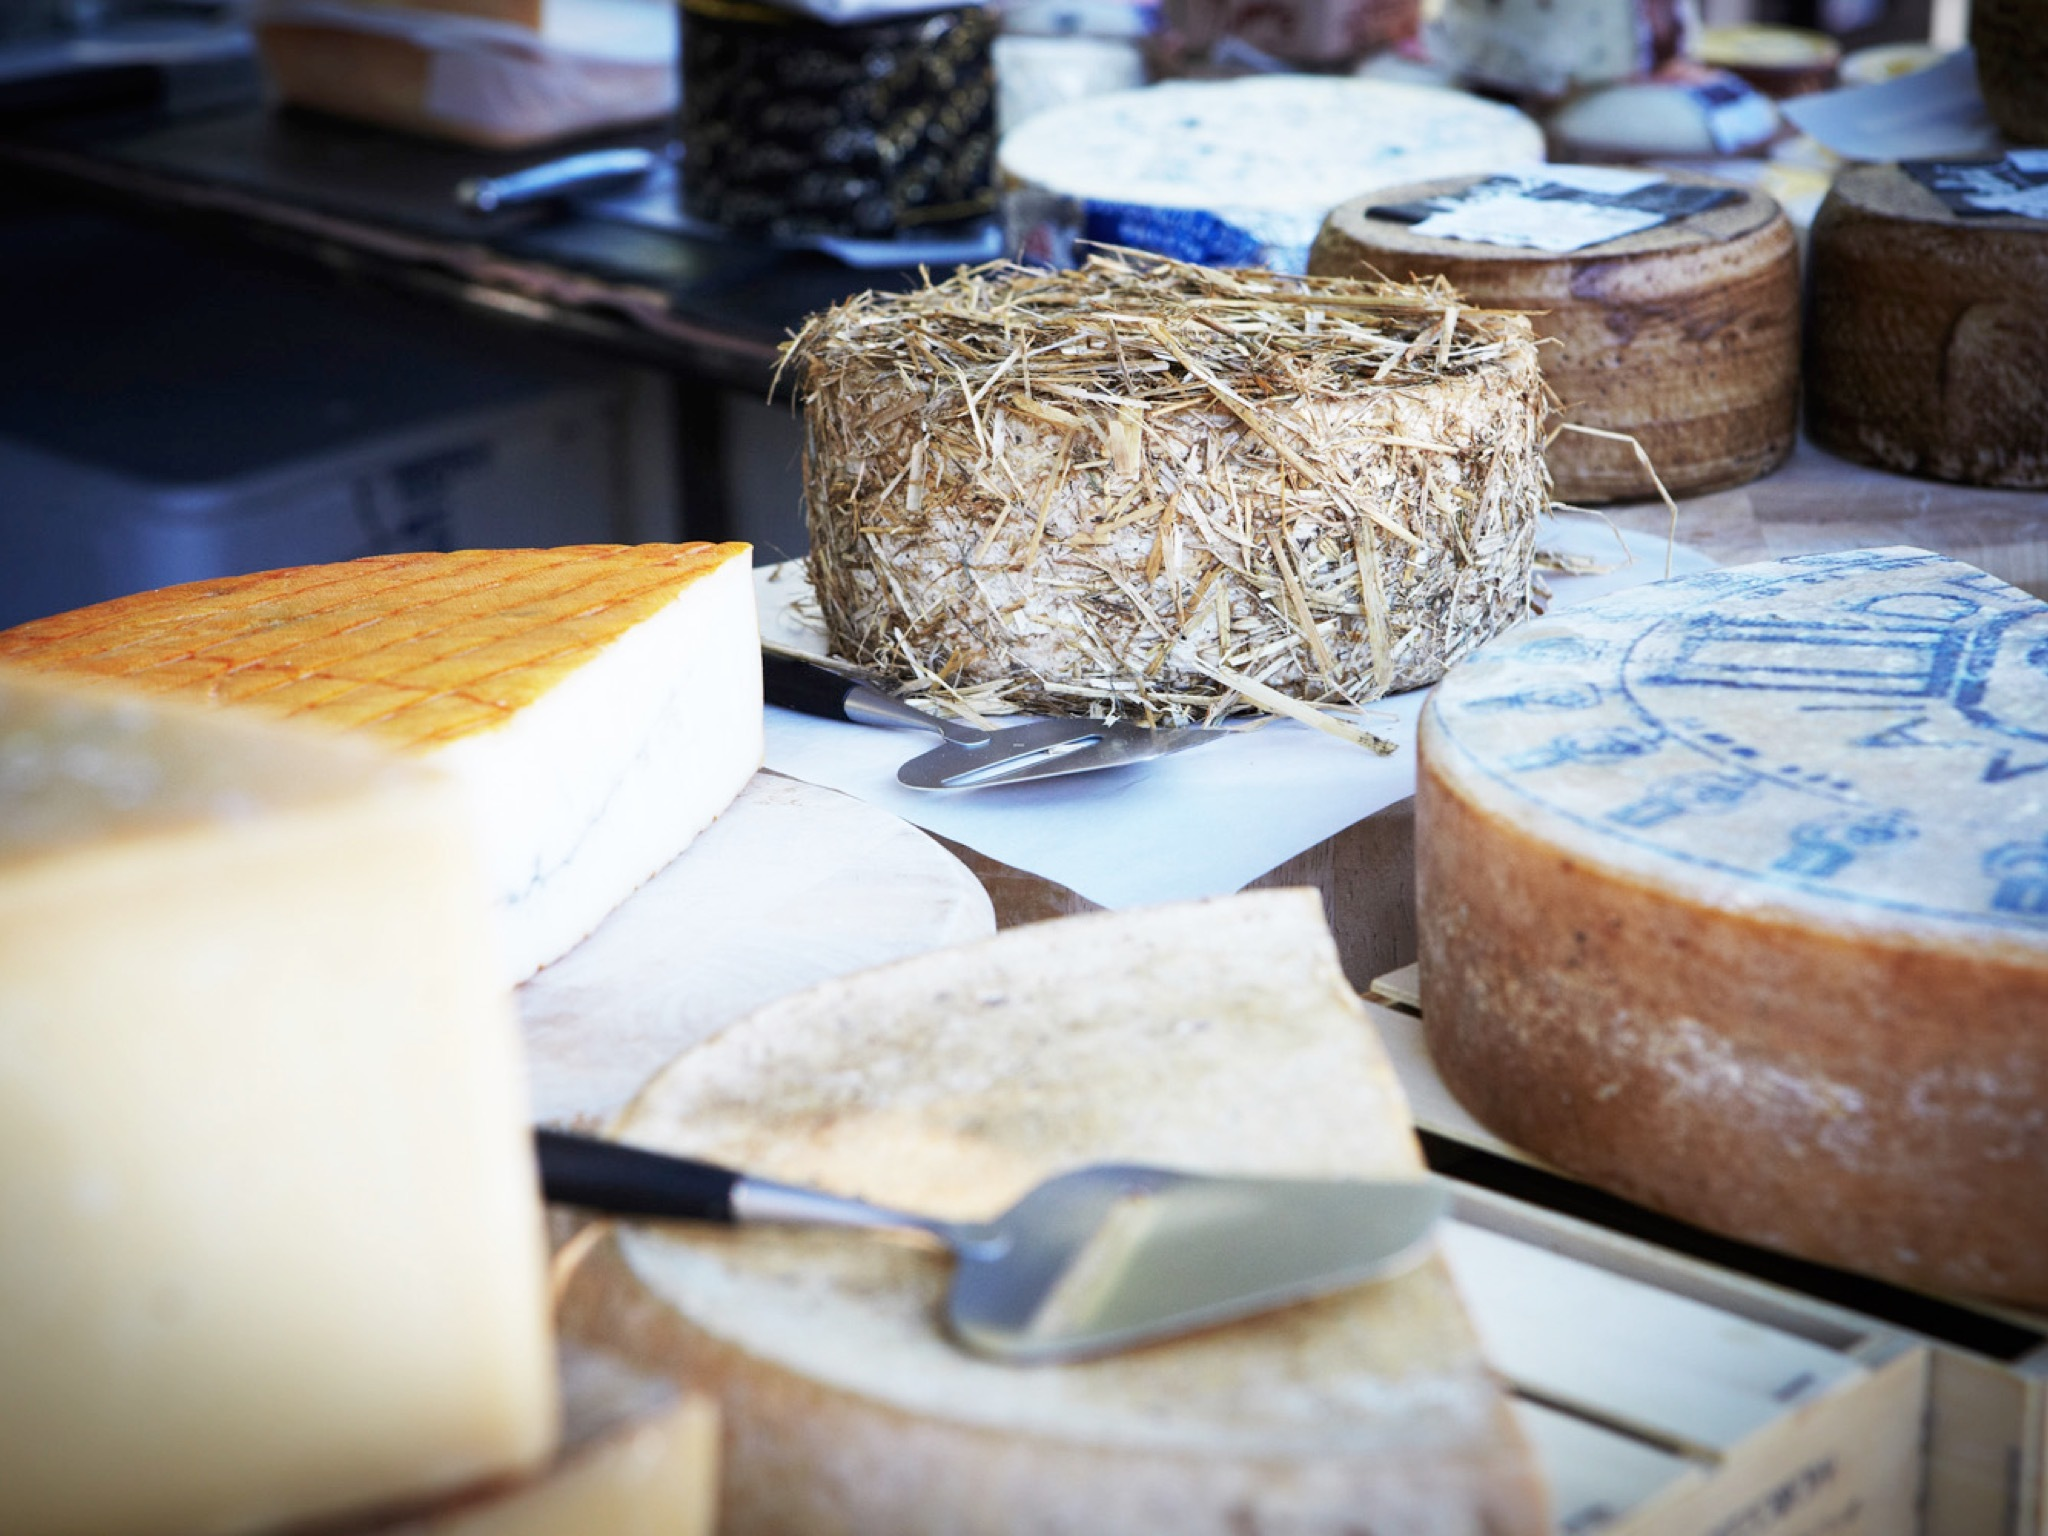 Cheese on display at market